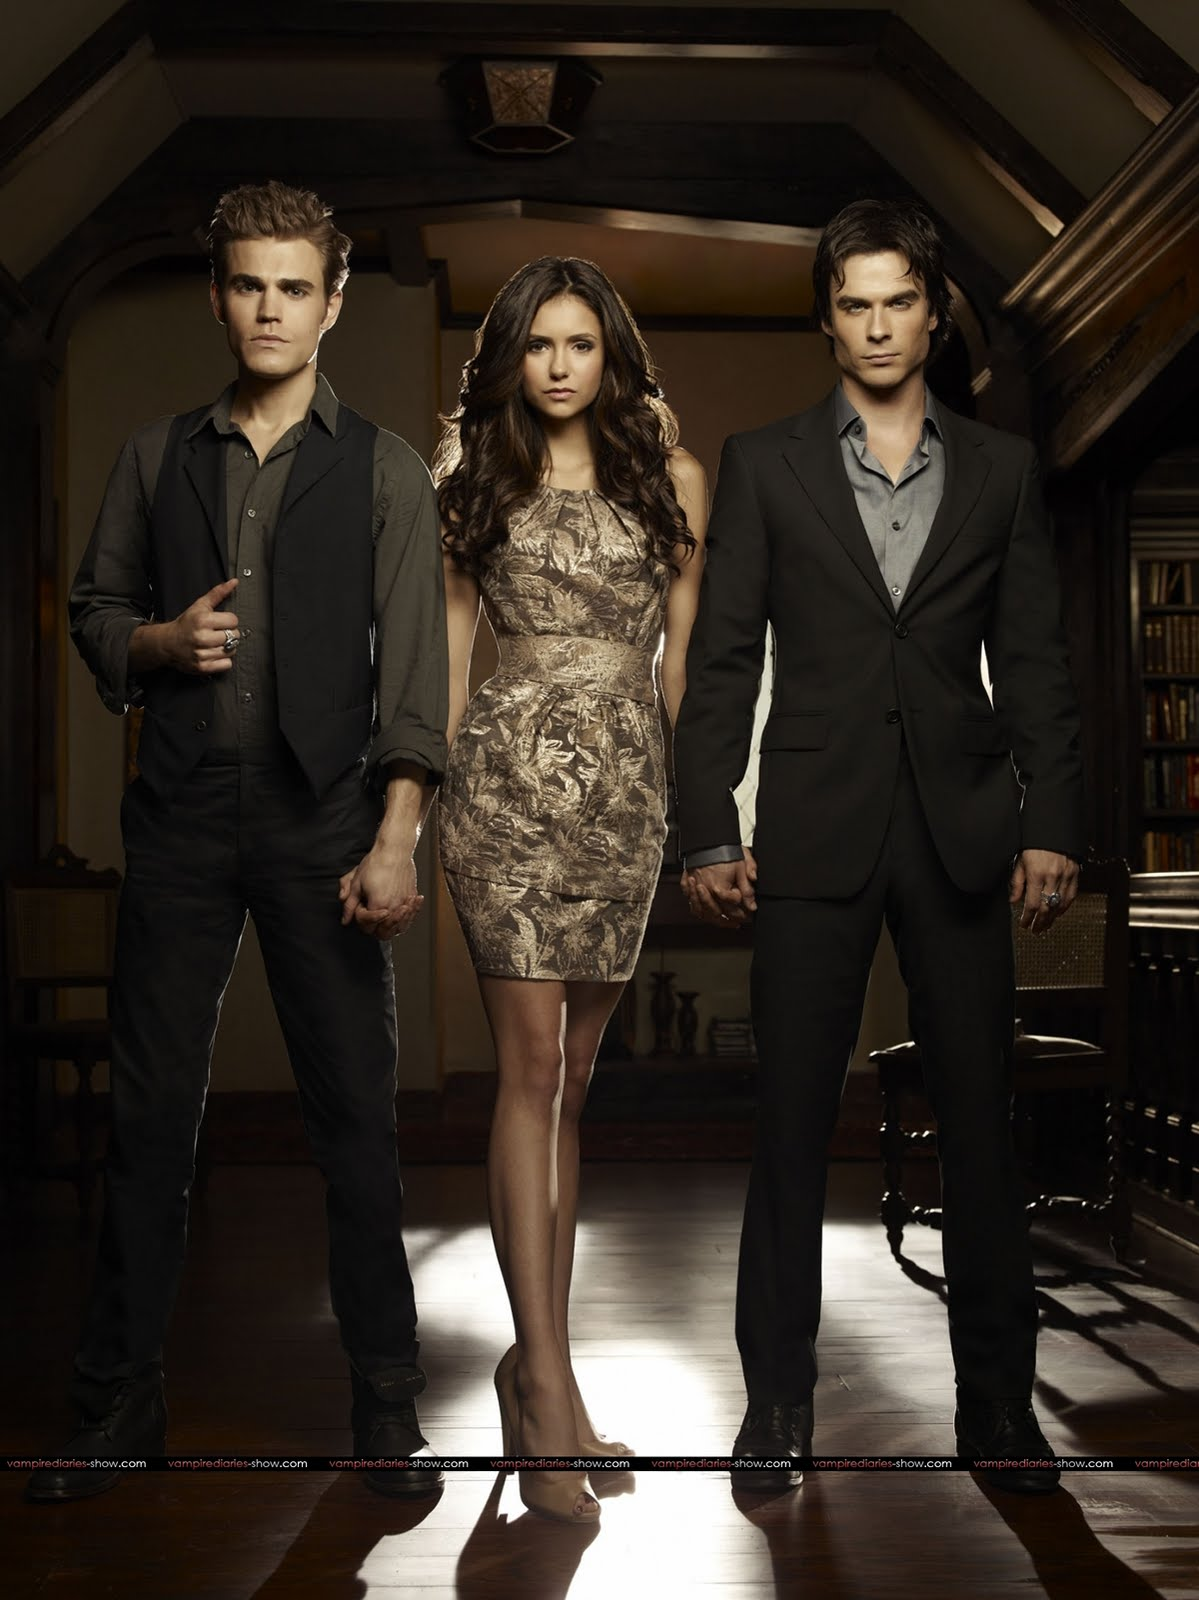 Stefan,Elena & Damon - The Vampire Diaries Saga Photo ...